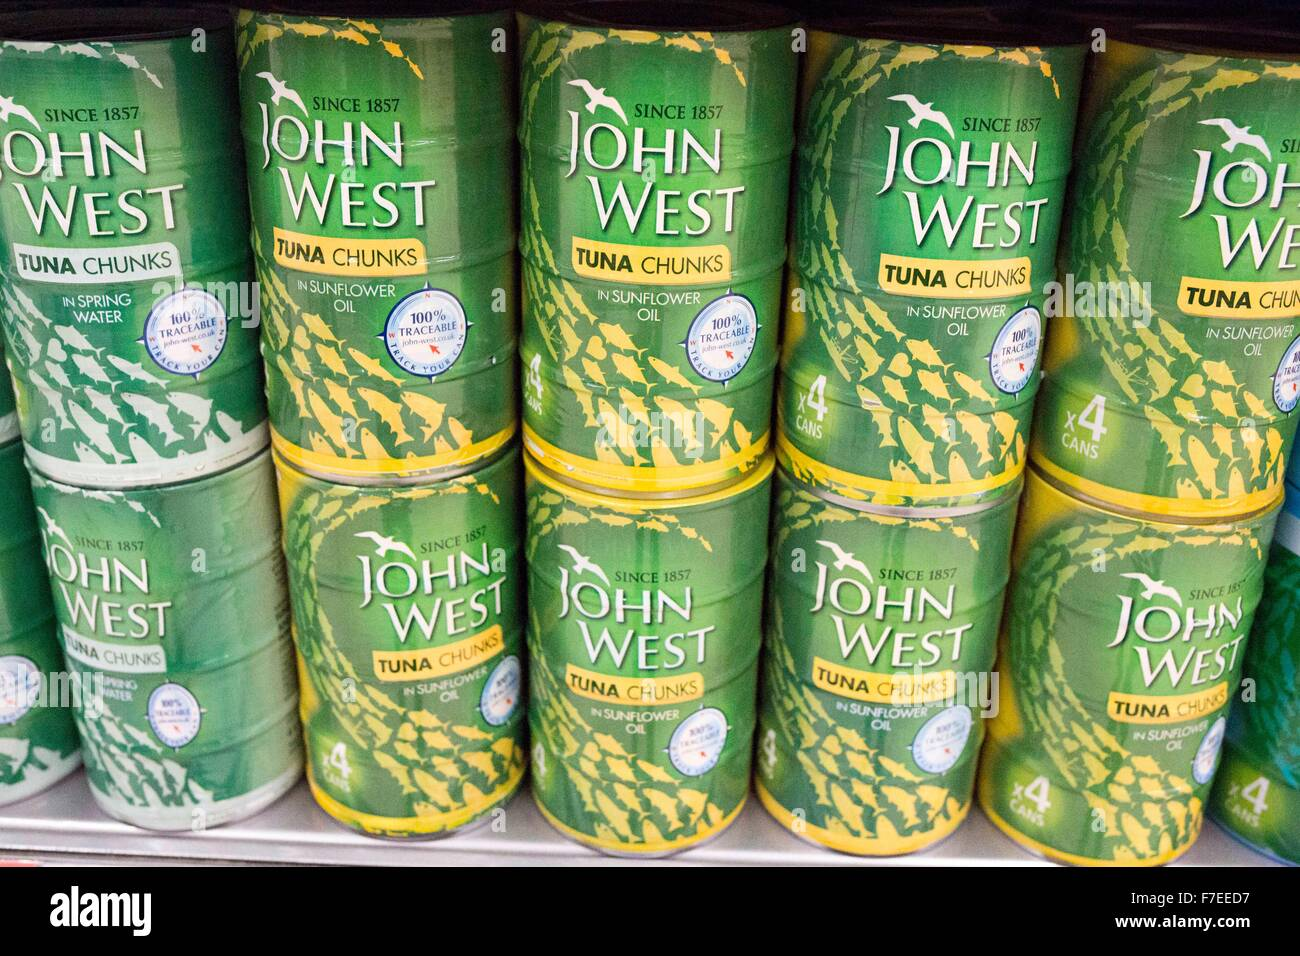 tins of John West Tuna Chunks - Stock Image